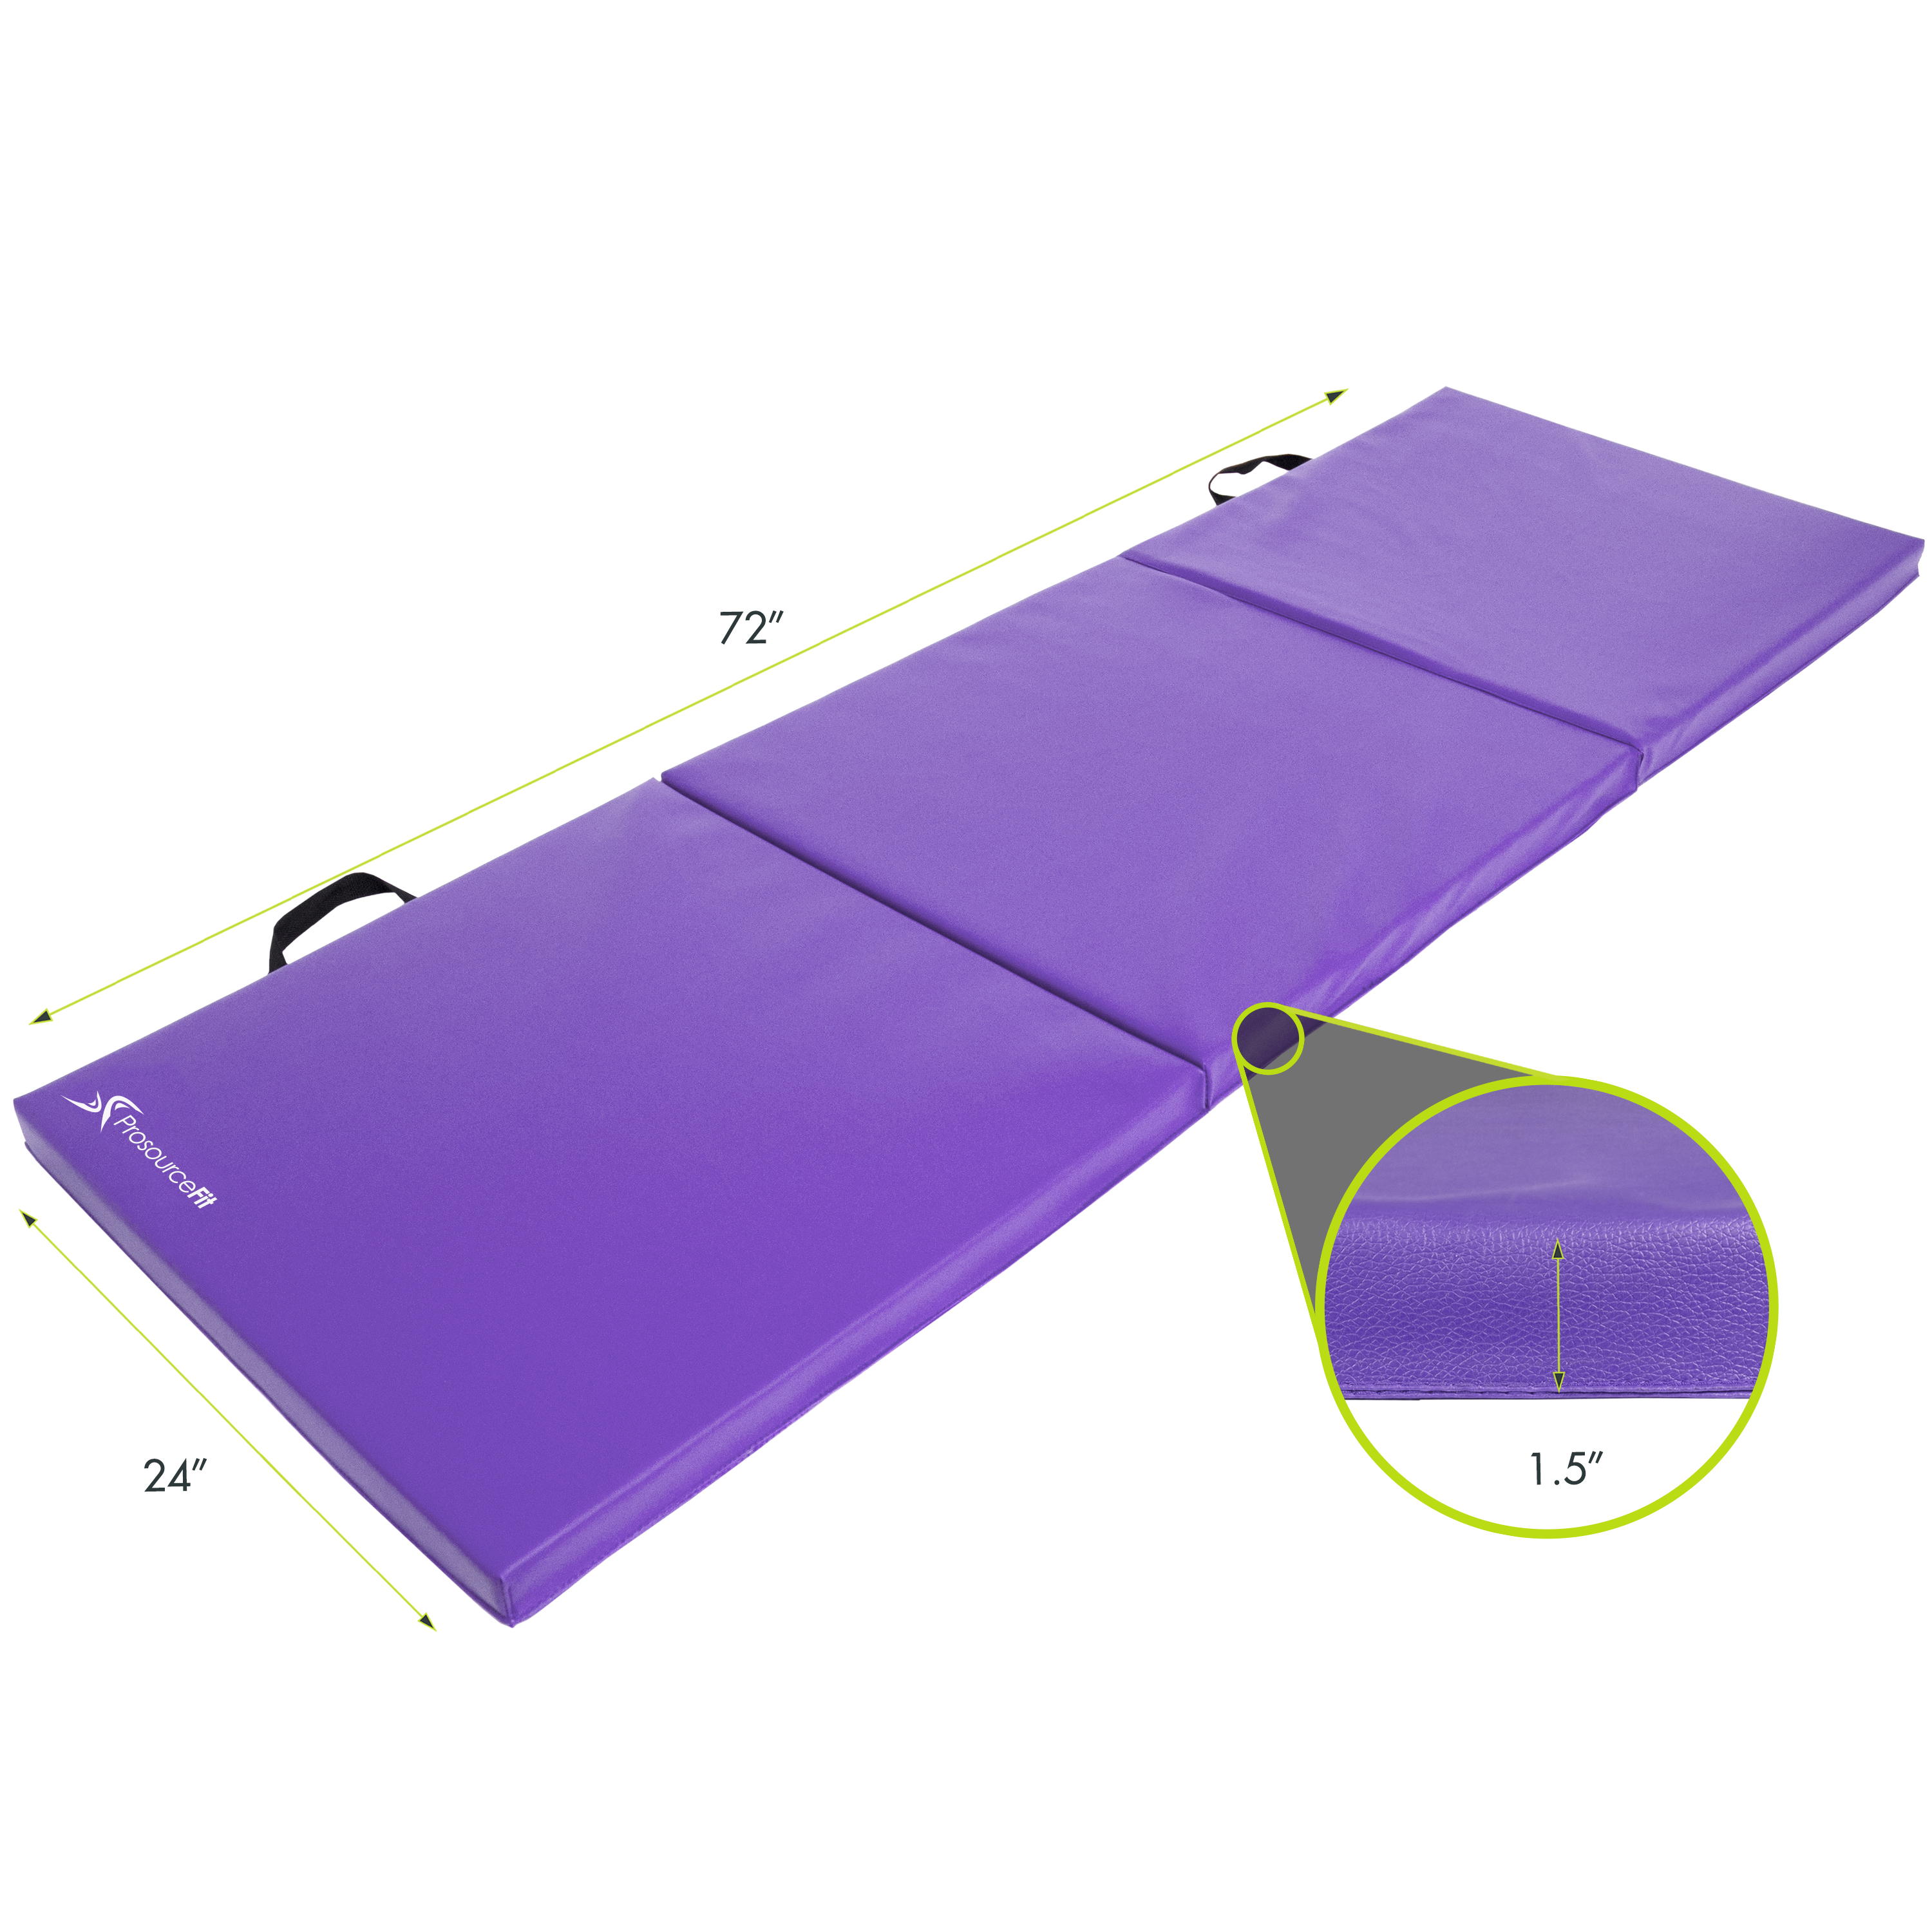 Stretching Core Workouts Gymnastics ProsourceFit Tri-Fold Folding Thick Exercise Mat 6/'x2/' with Carrying Handles for MMA